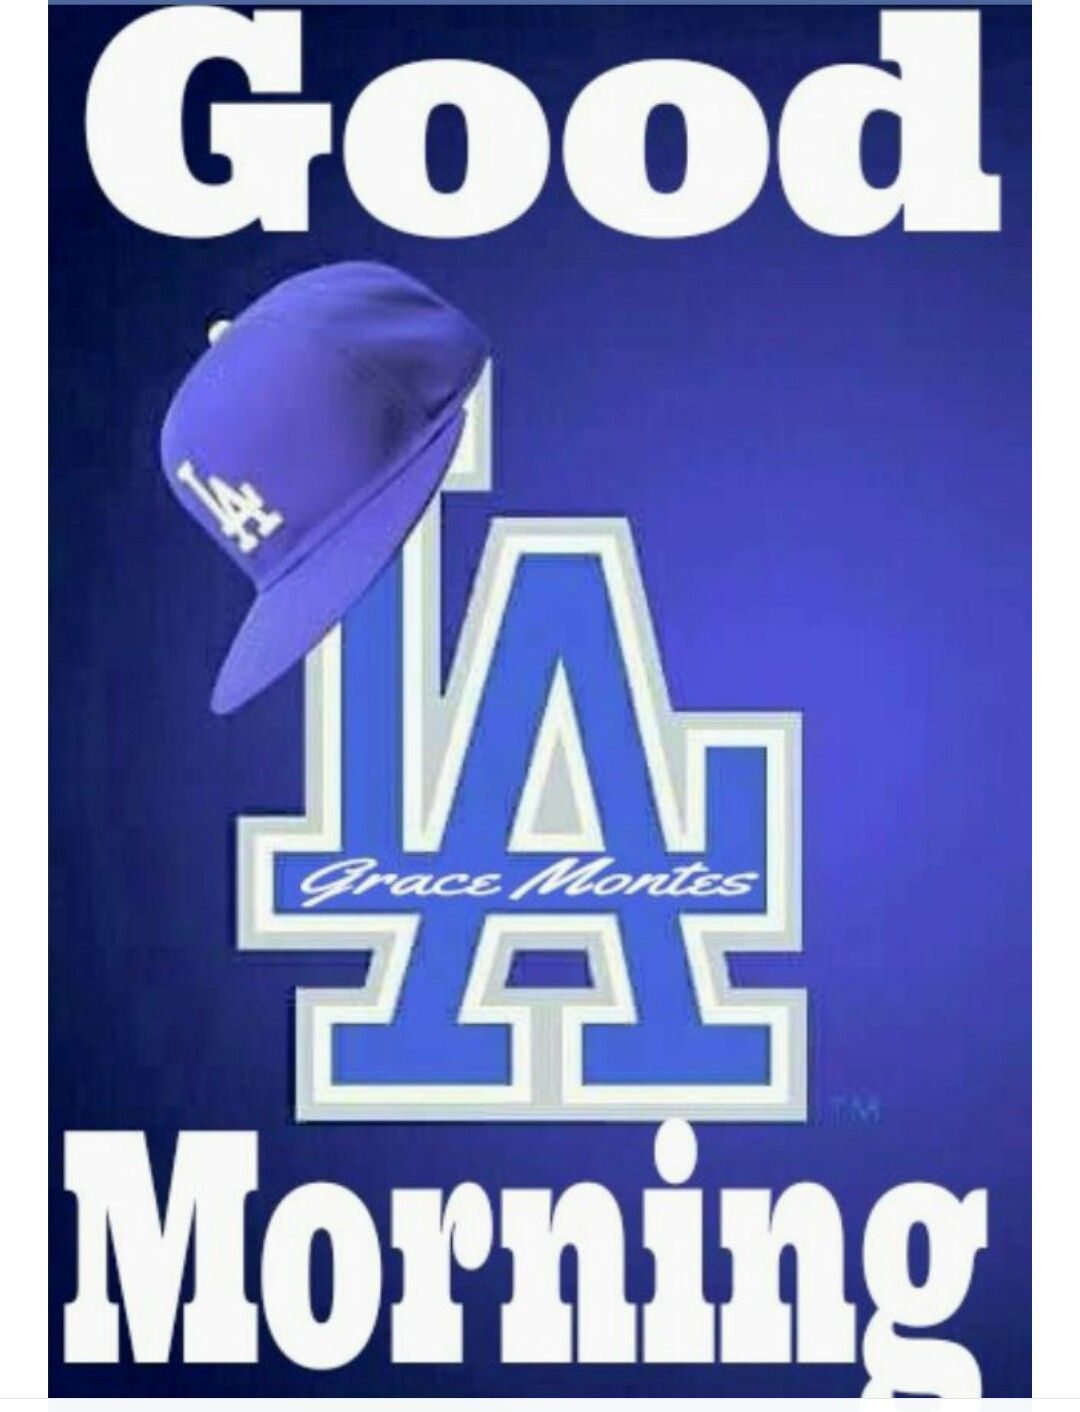 Pin By Monica Rodriguez On La Dodgers Dodgers Baseball Mlb Dodgers Dodgers Girl